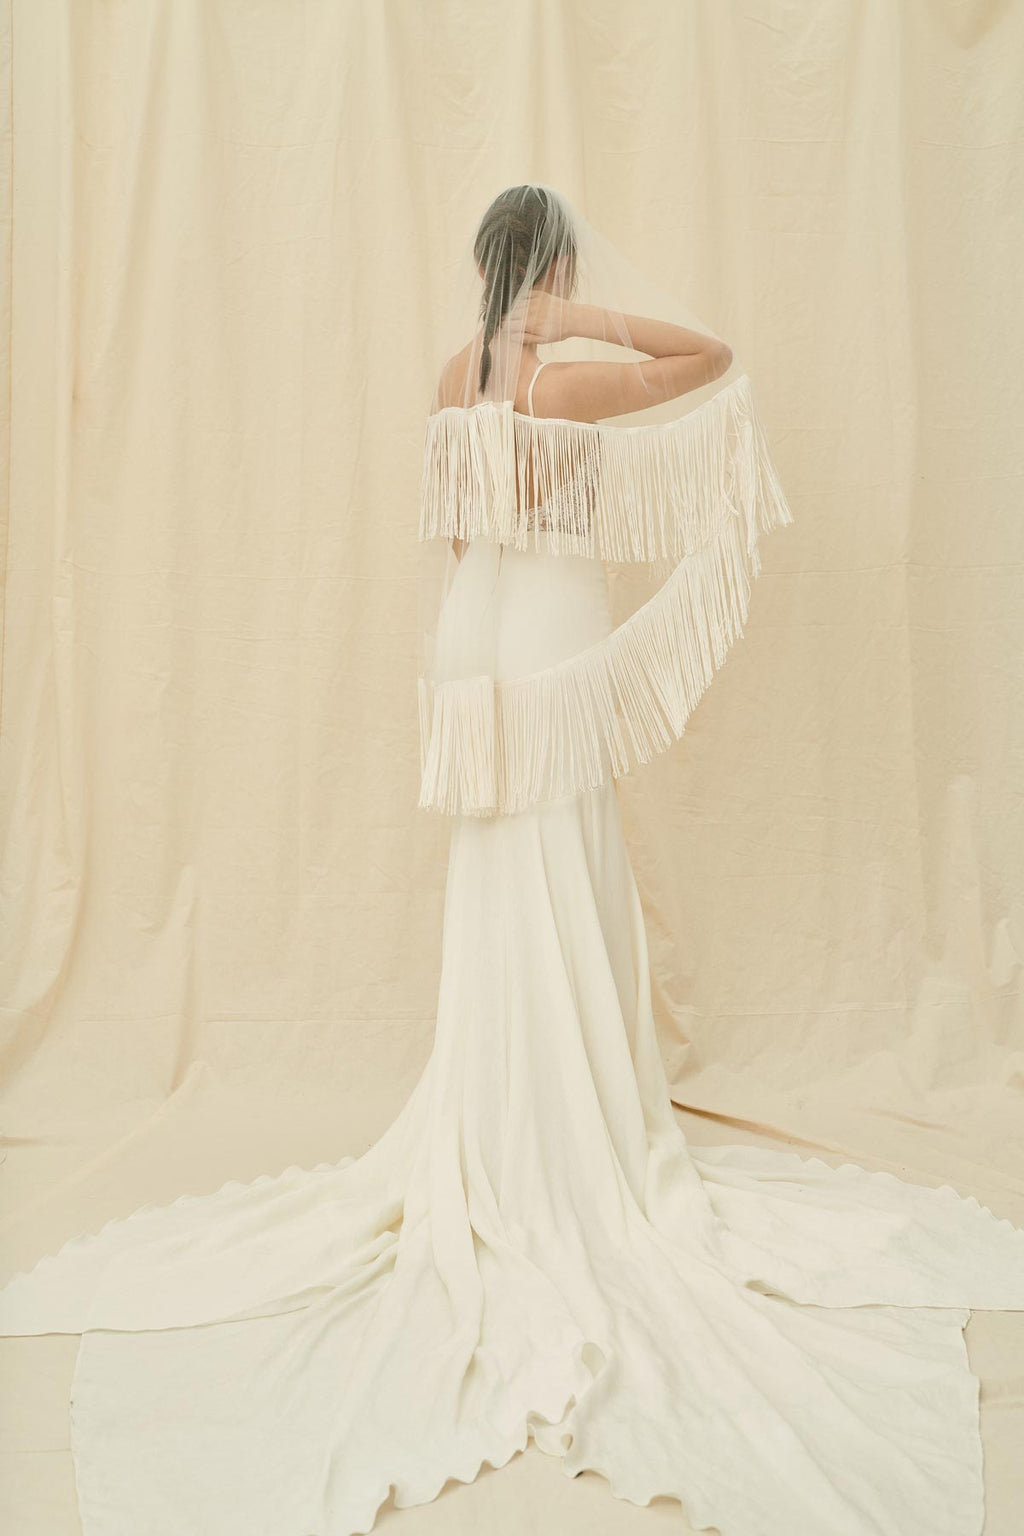 A fingertip length boho veil with a long fringe trim